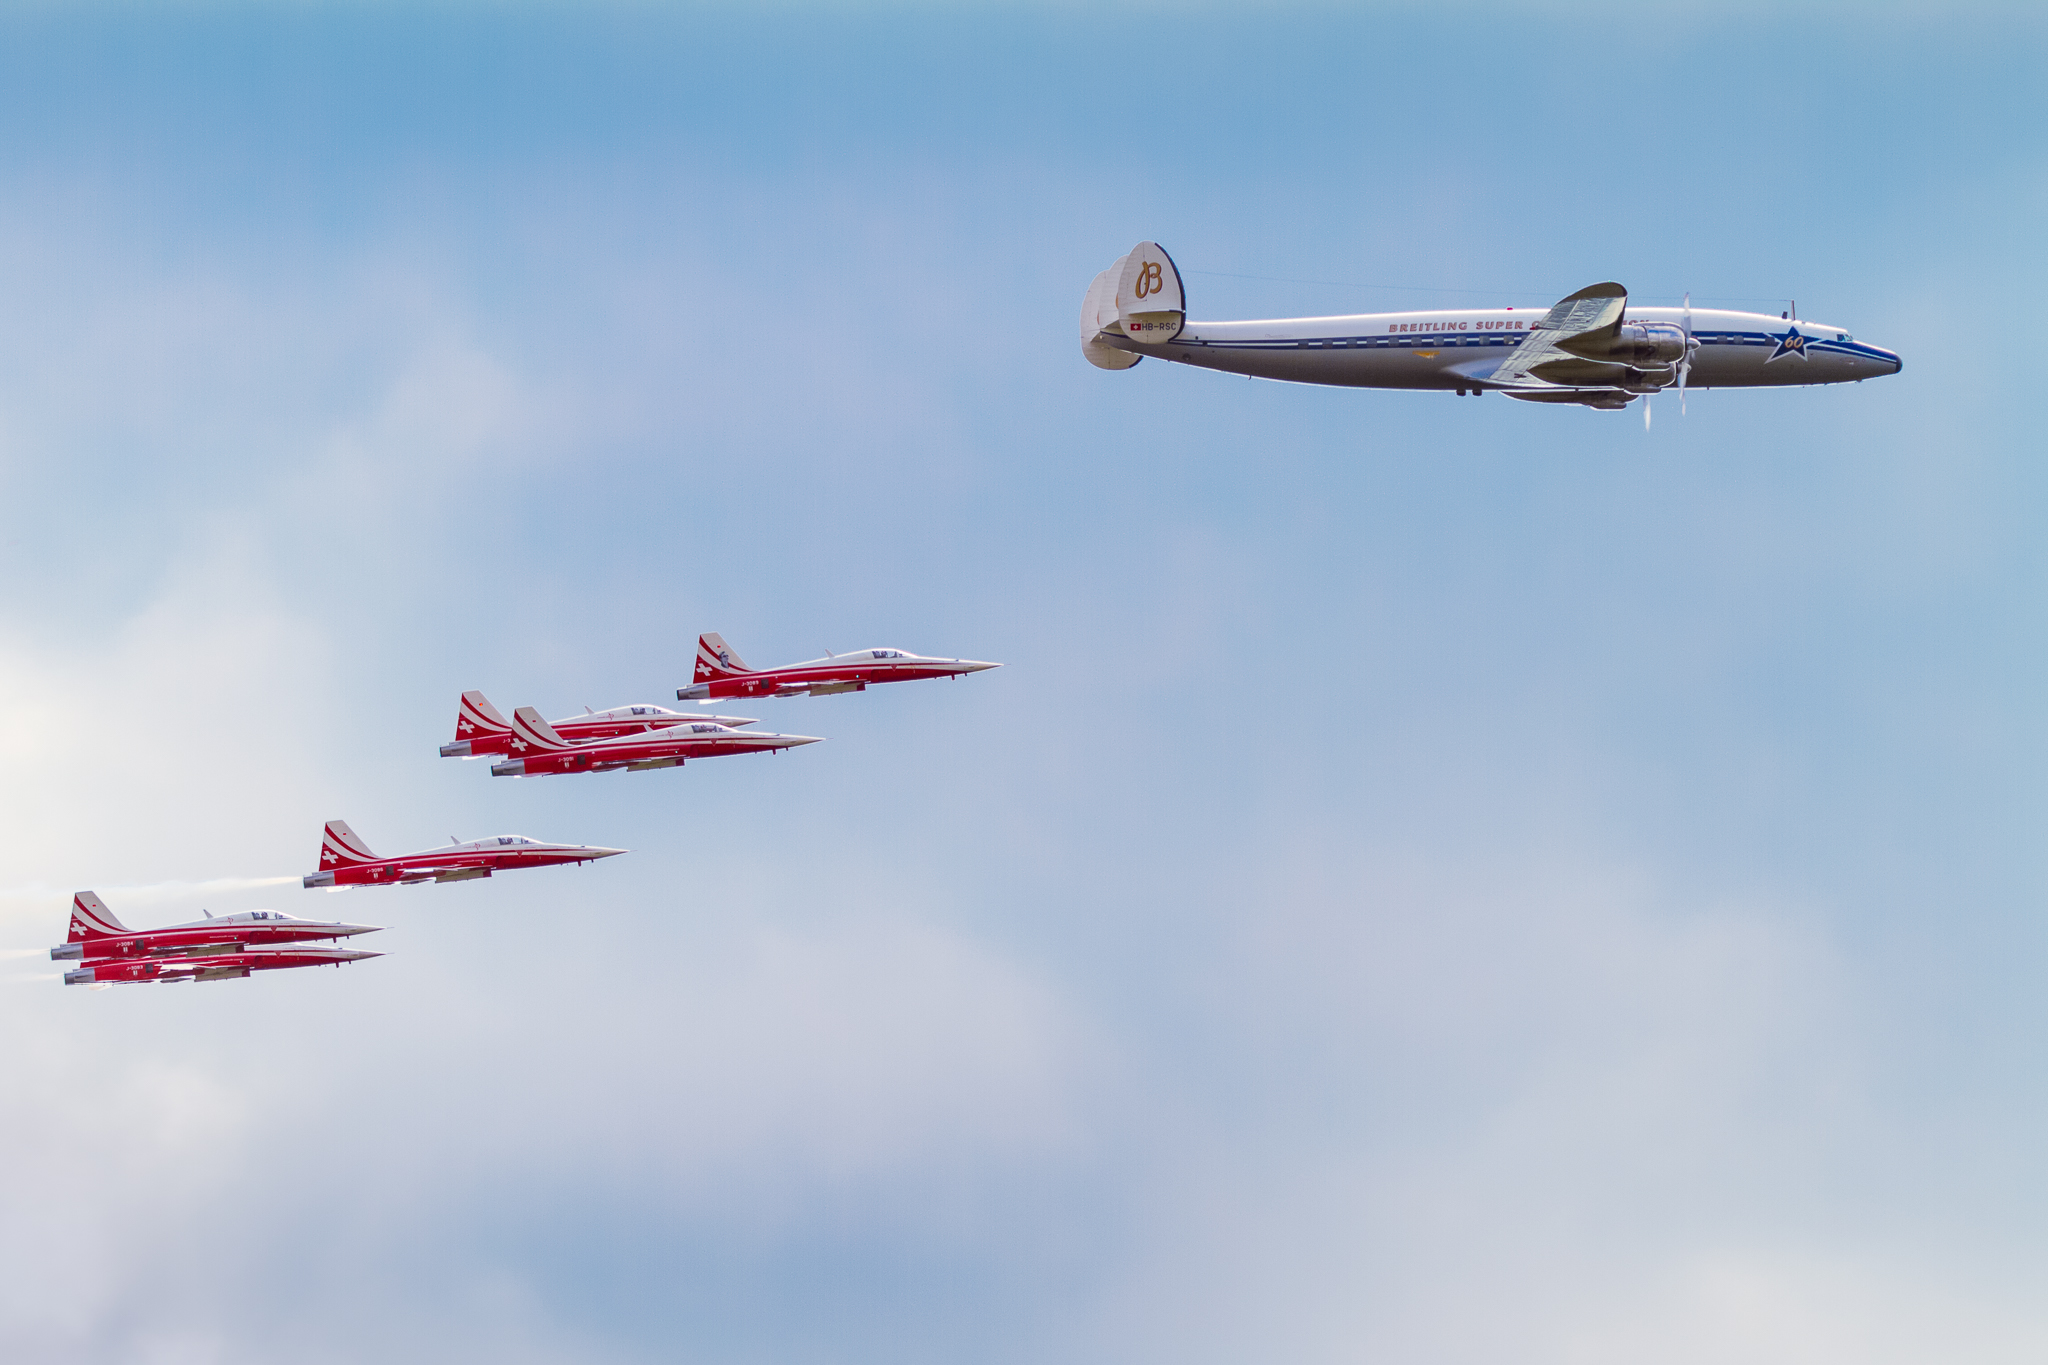 Patrouille Suisse & the Lockheed Constellation